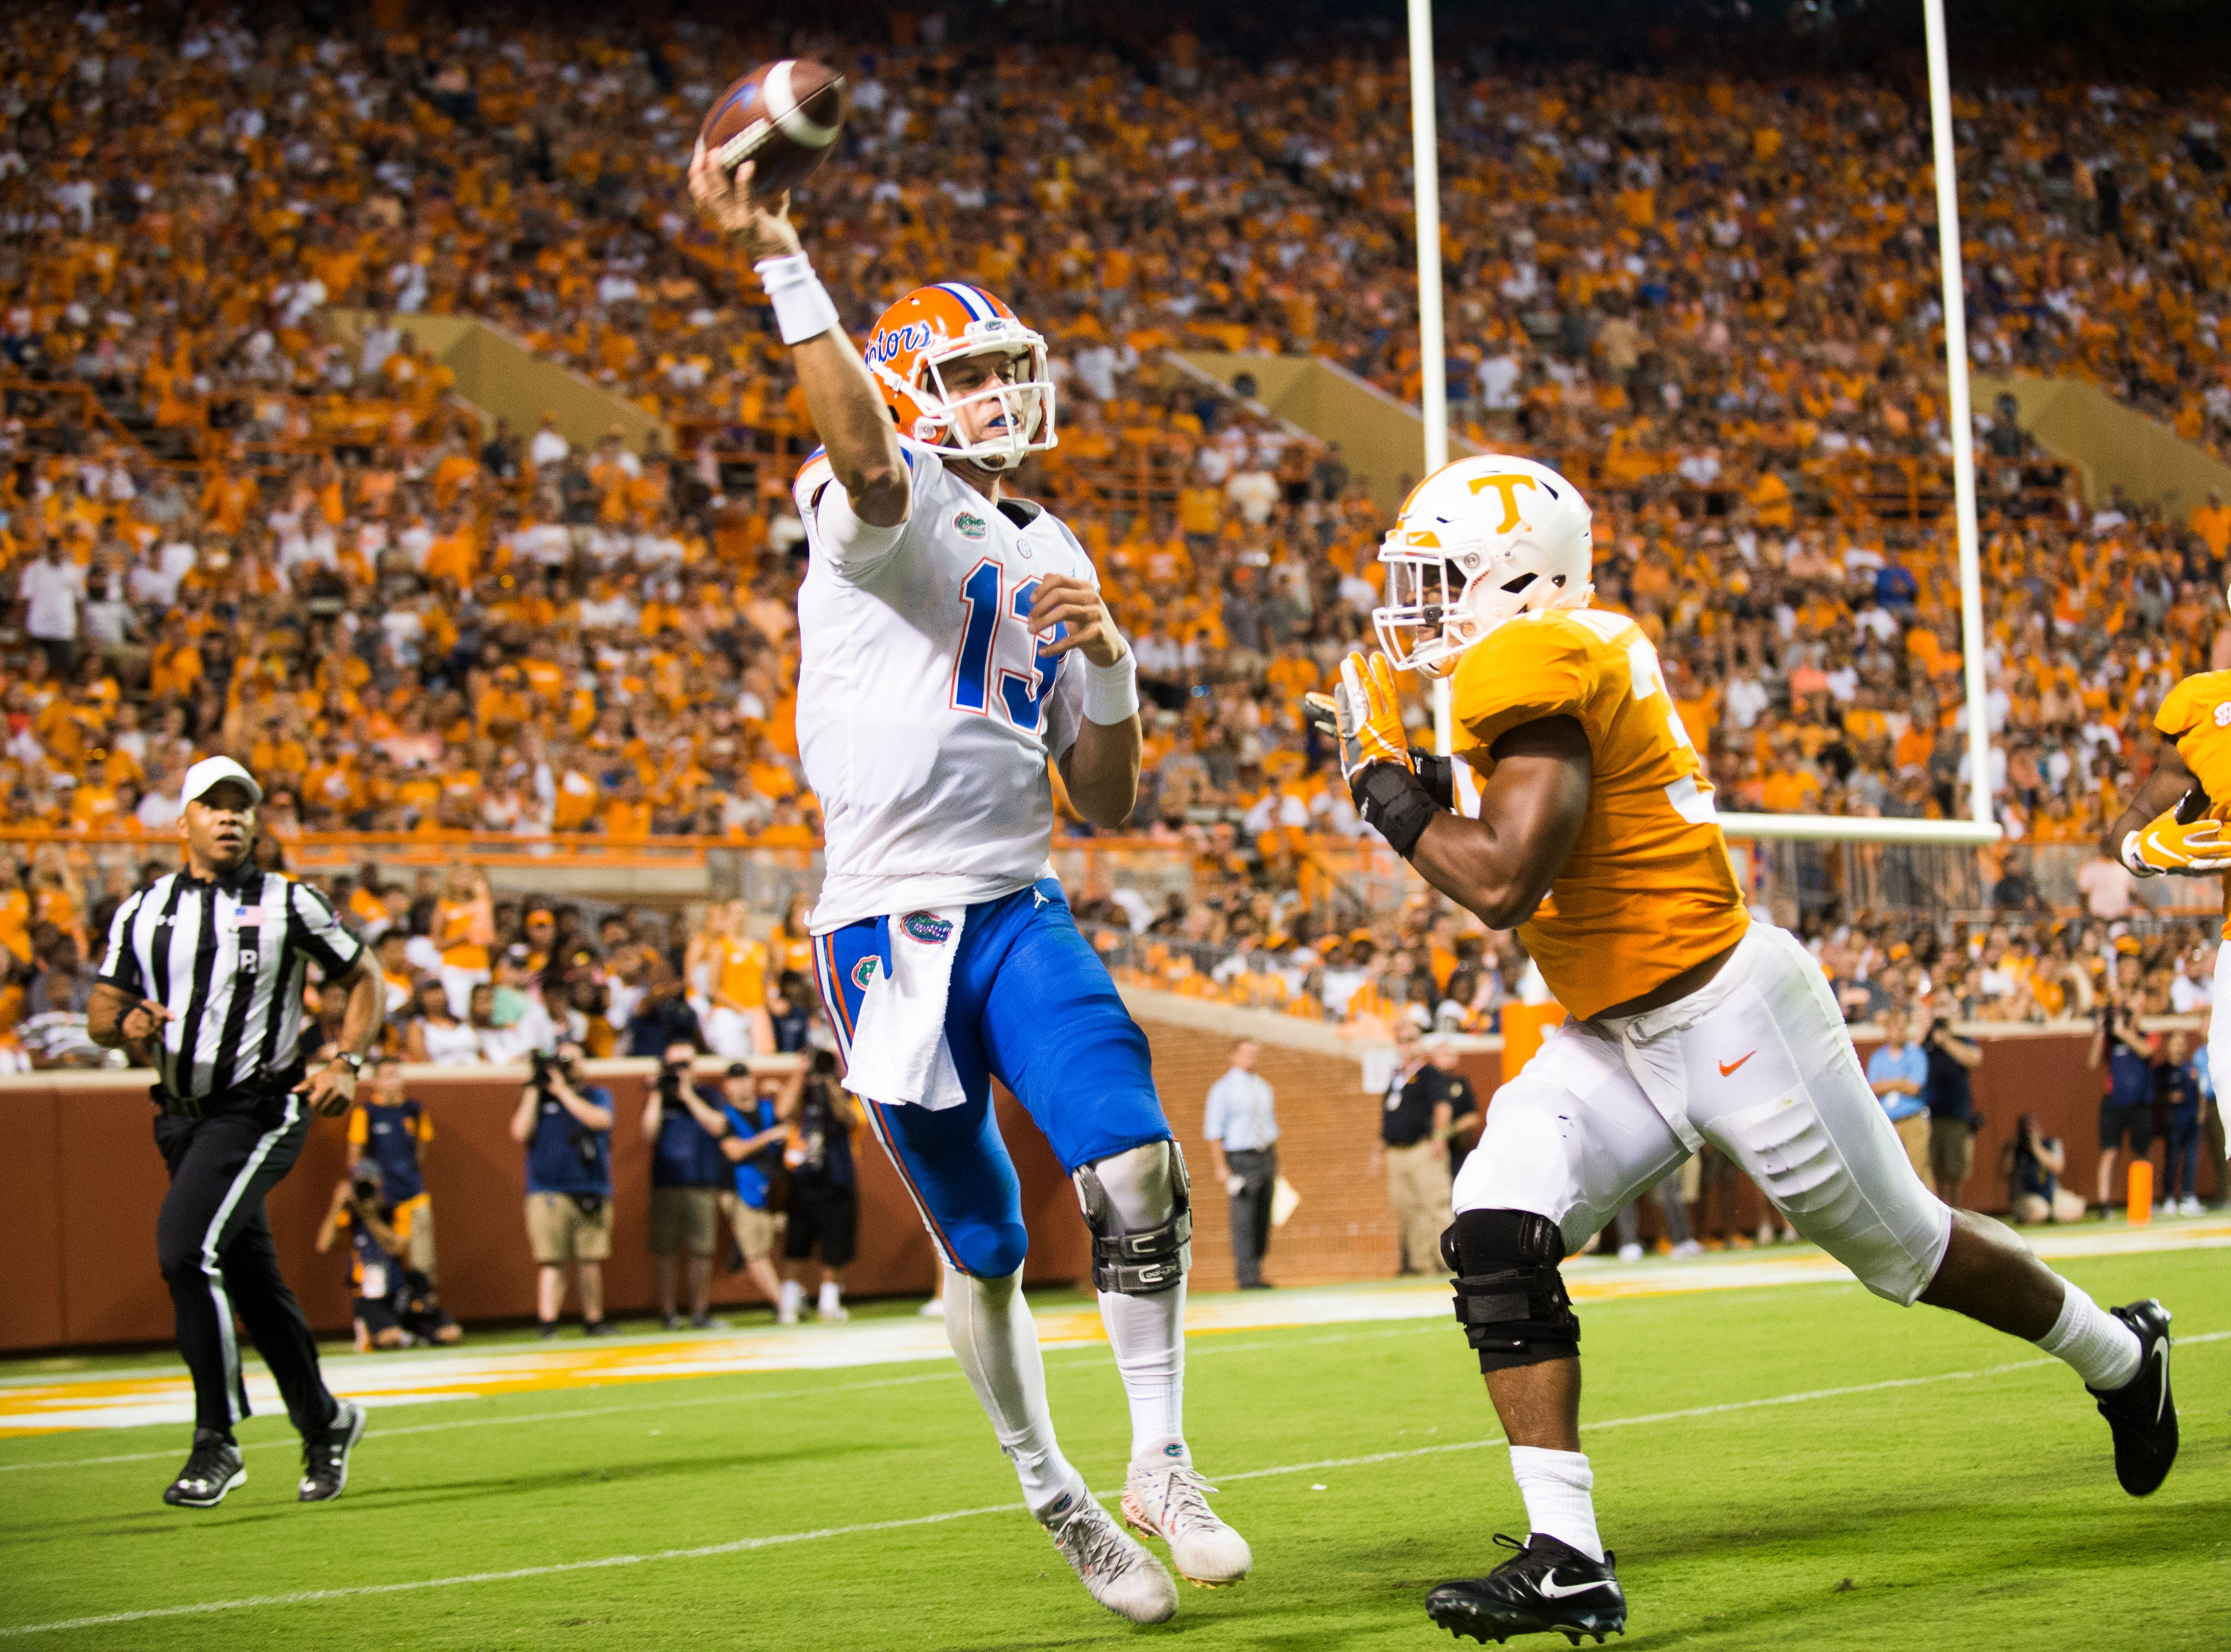 Florida quarterback Feleipe Franks (13)  throws a pass as Tennessee linebacker Darrin Kirkland Jr. (34) defends during a game between Tennessee and Florida at Neyland Stadium in Knoxville, Tennessee on Saturday, September 22, 2018.